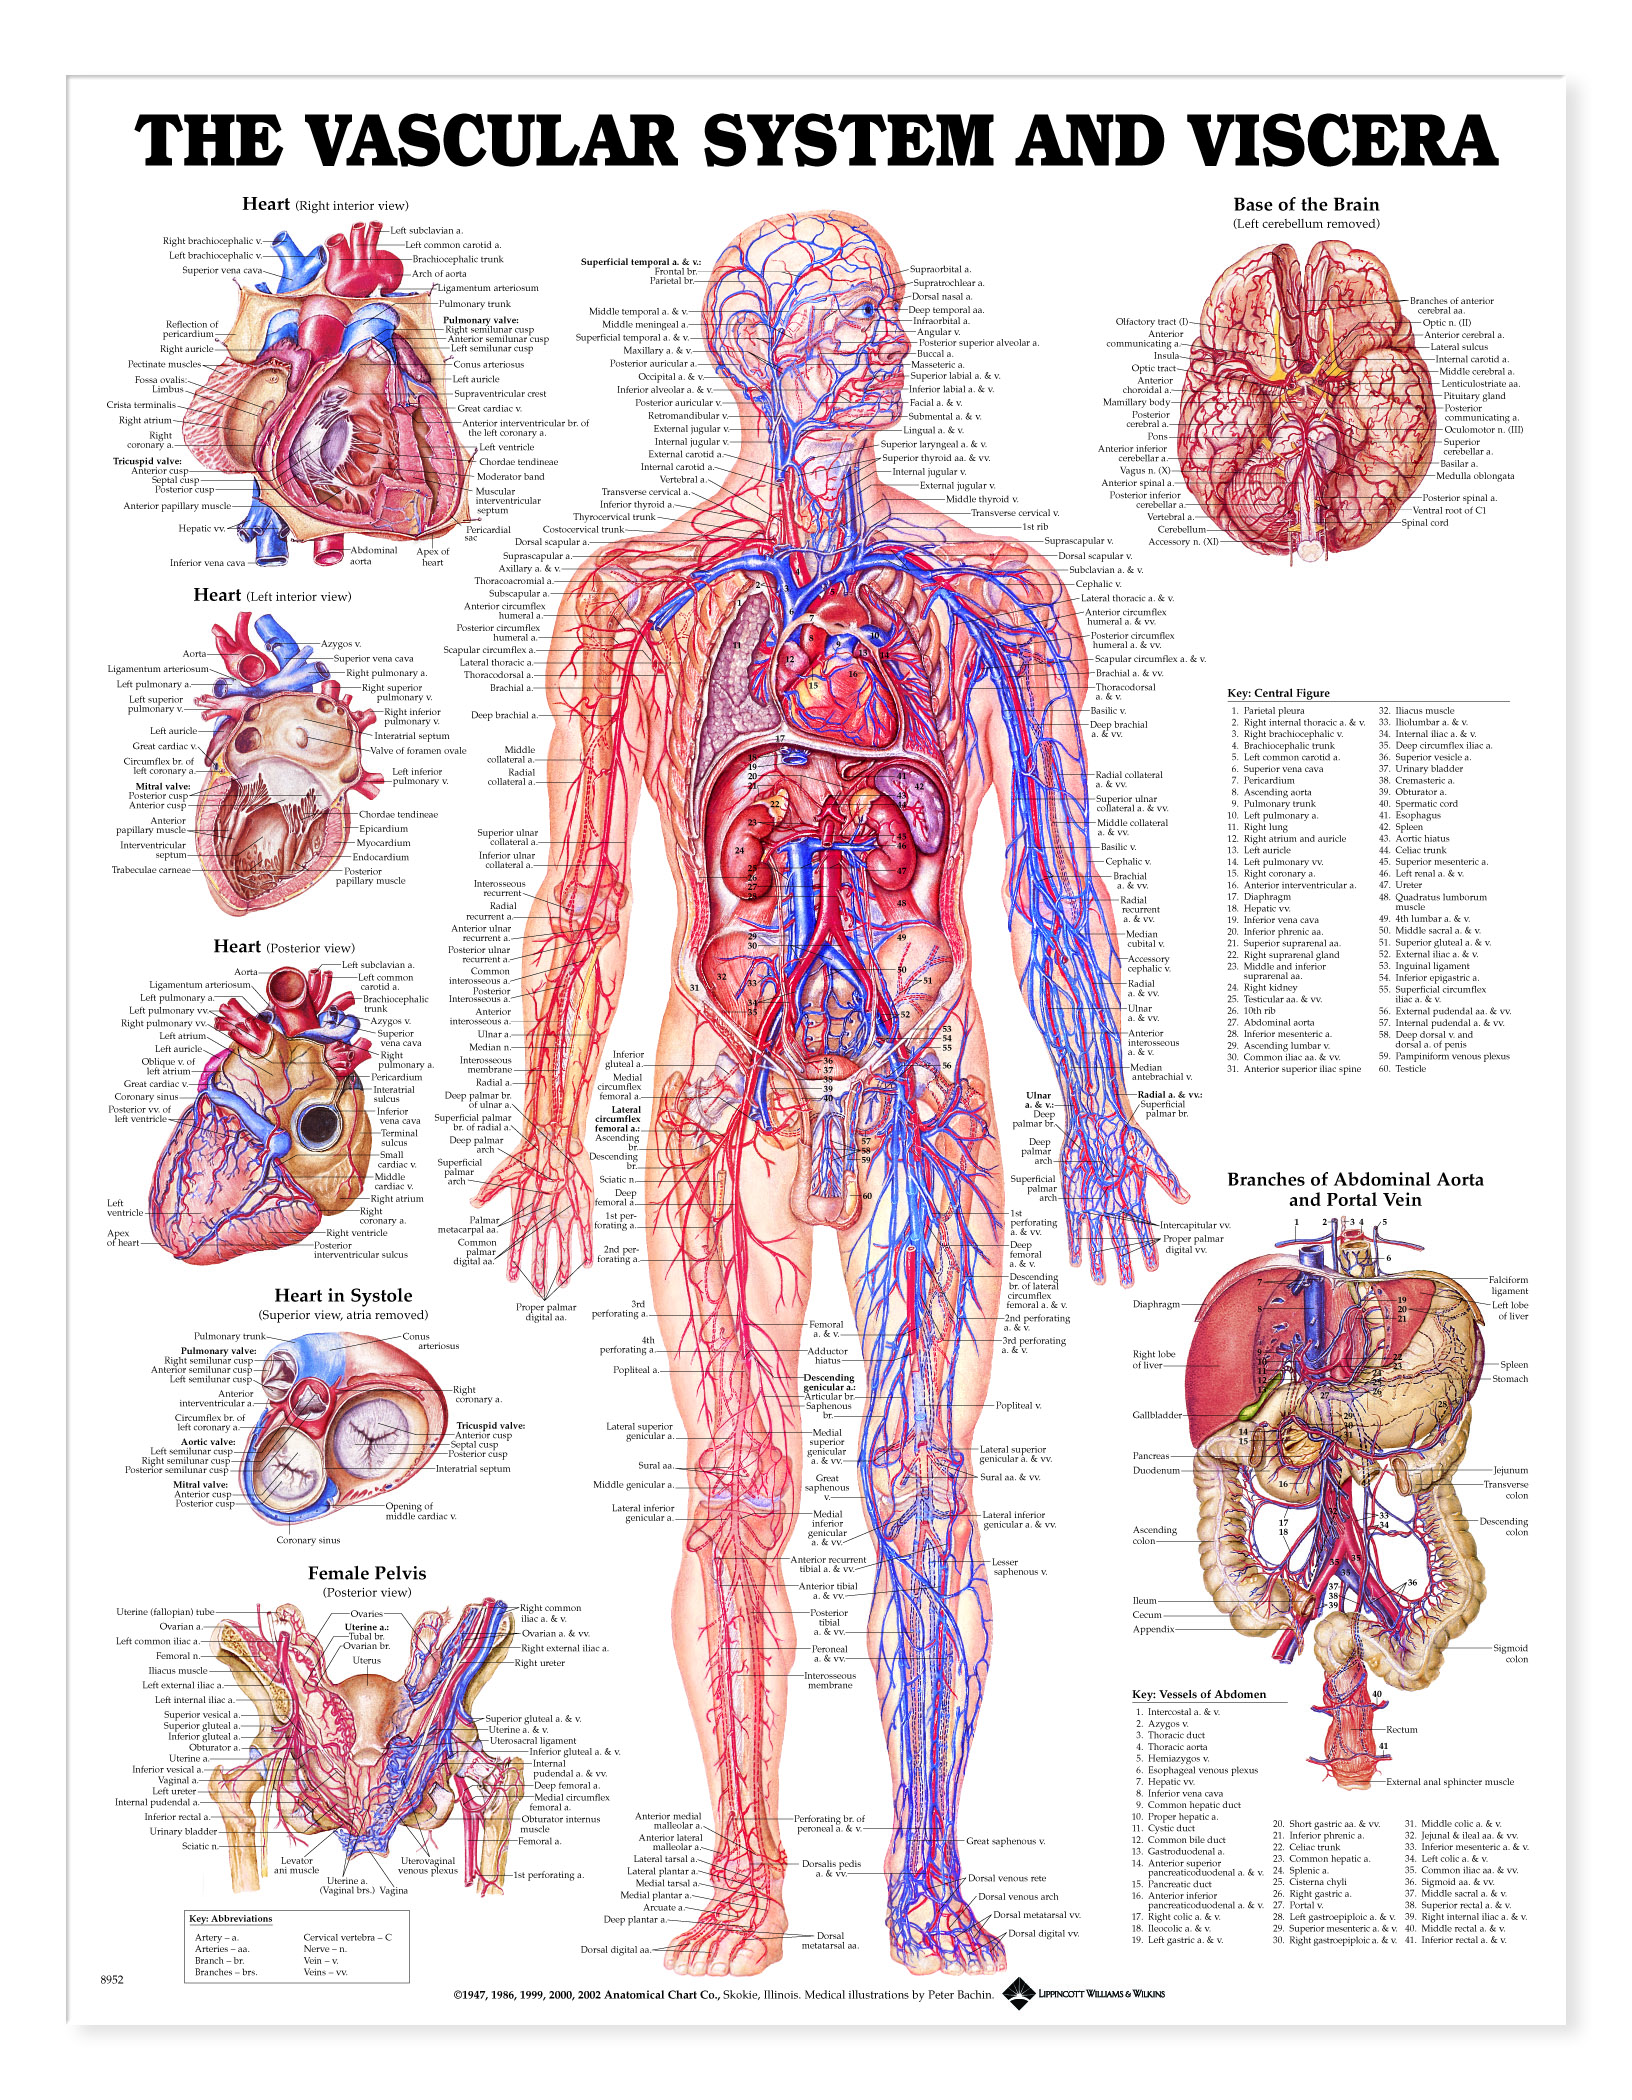 Vascular System And Viscera Charts 1941